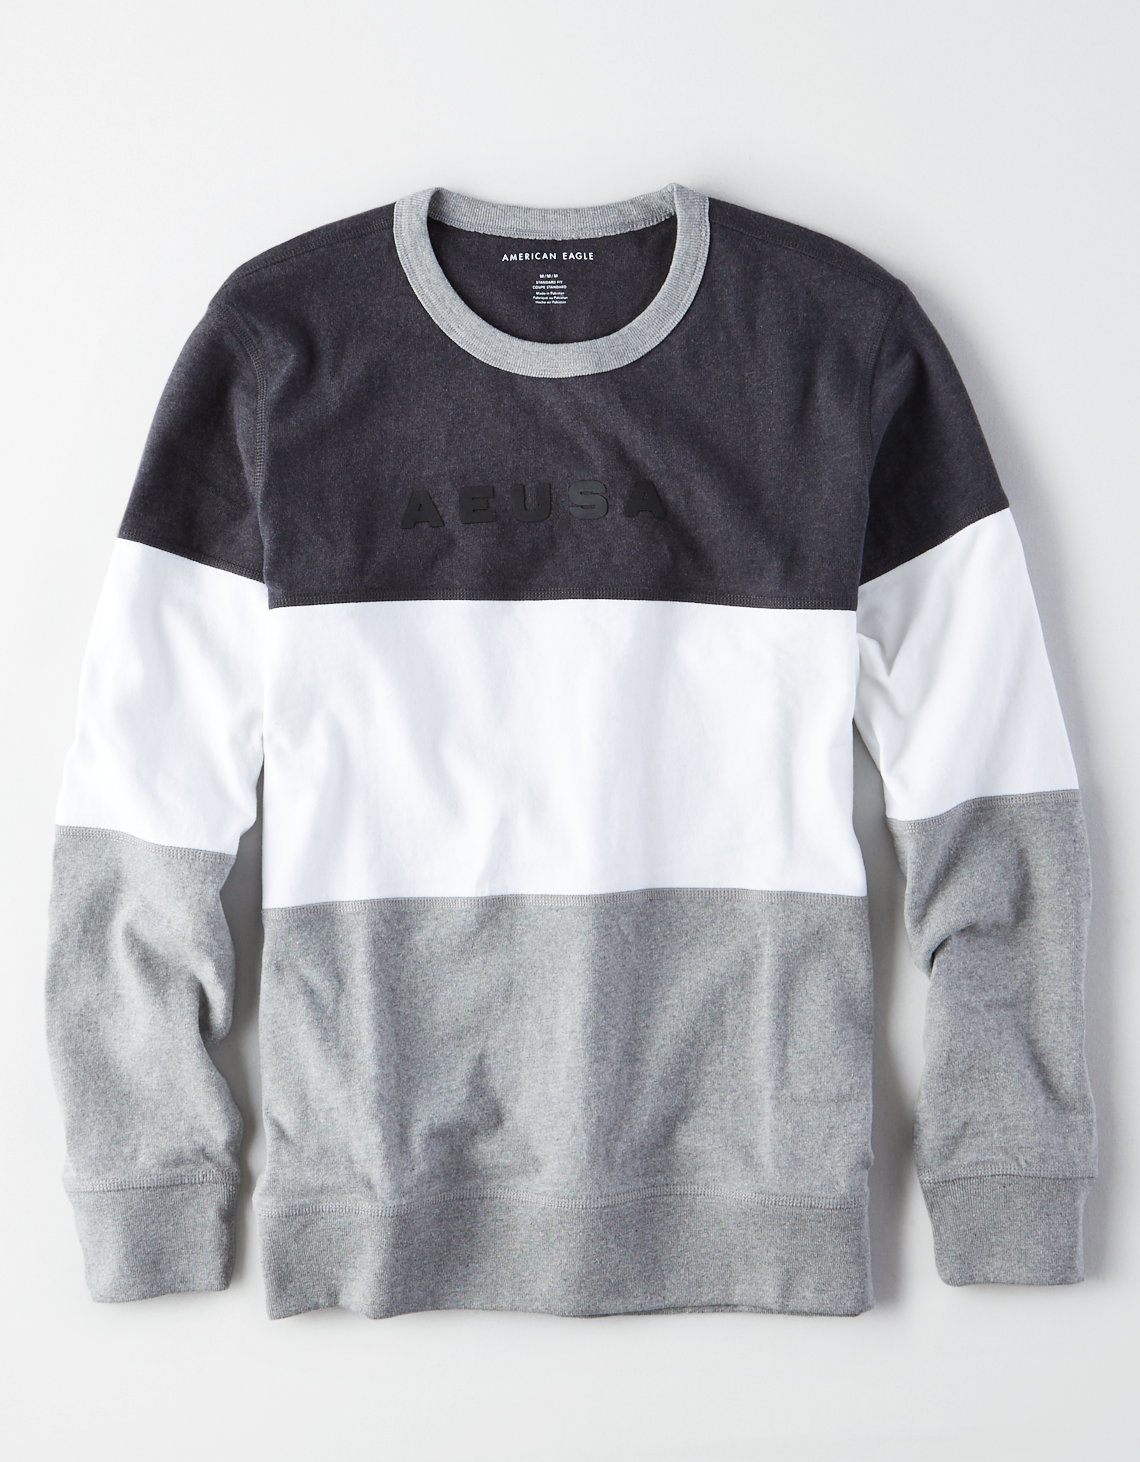 AE Long Sleeve Graphic Tee. Placeholder image. Product Image 6cb1138d7cd